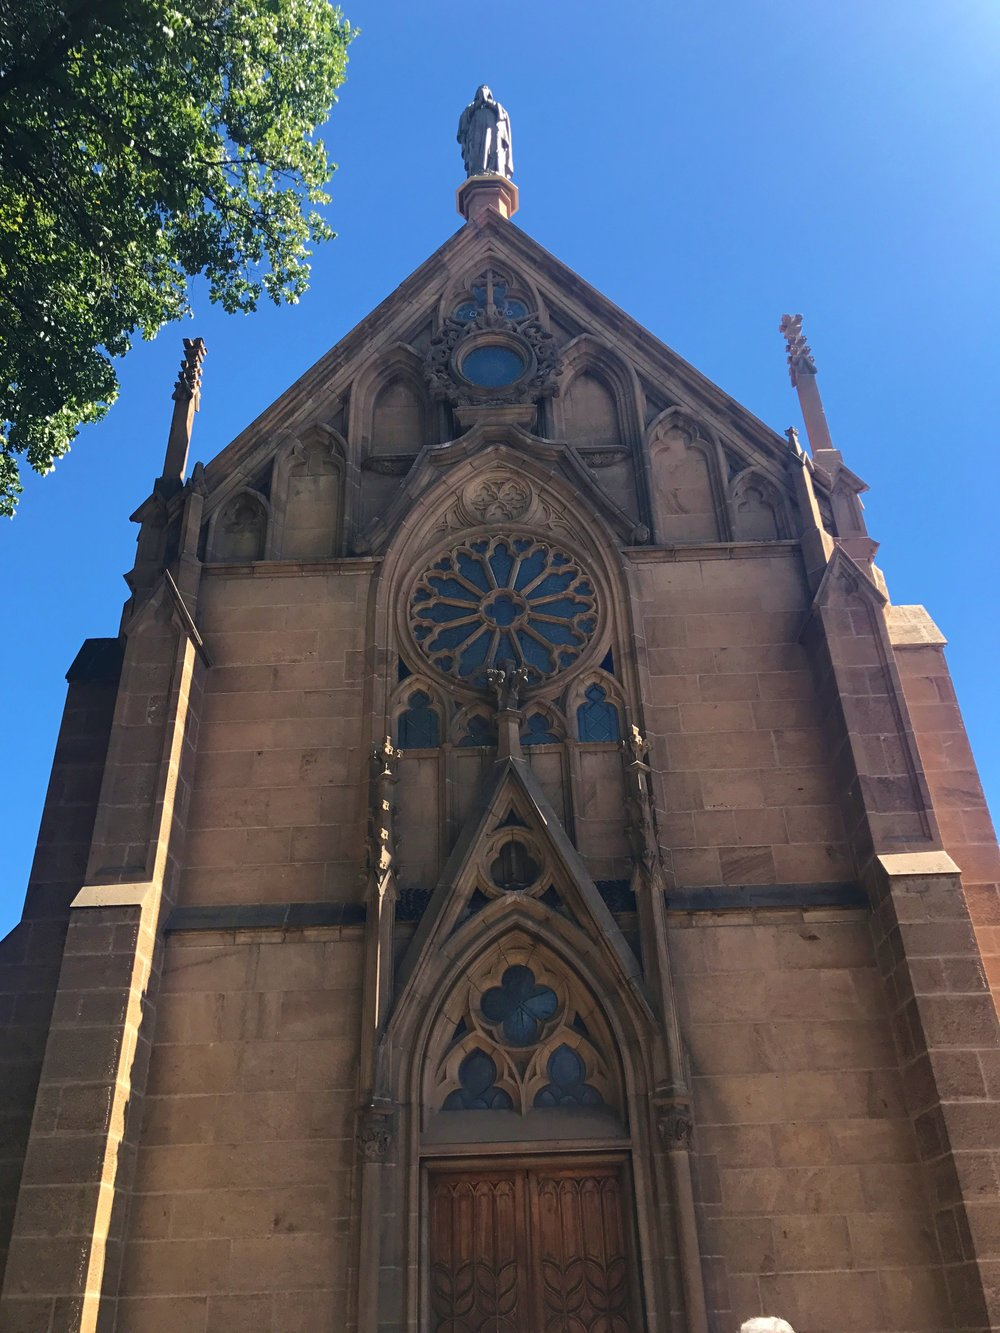 Exterior of the Loretto Chapel